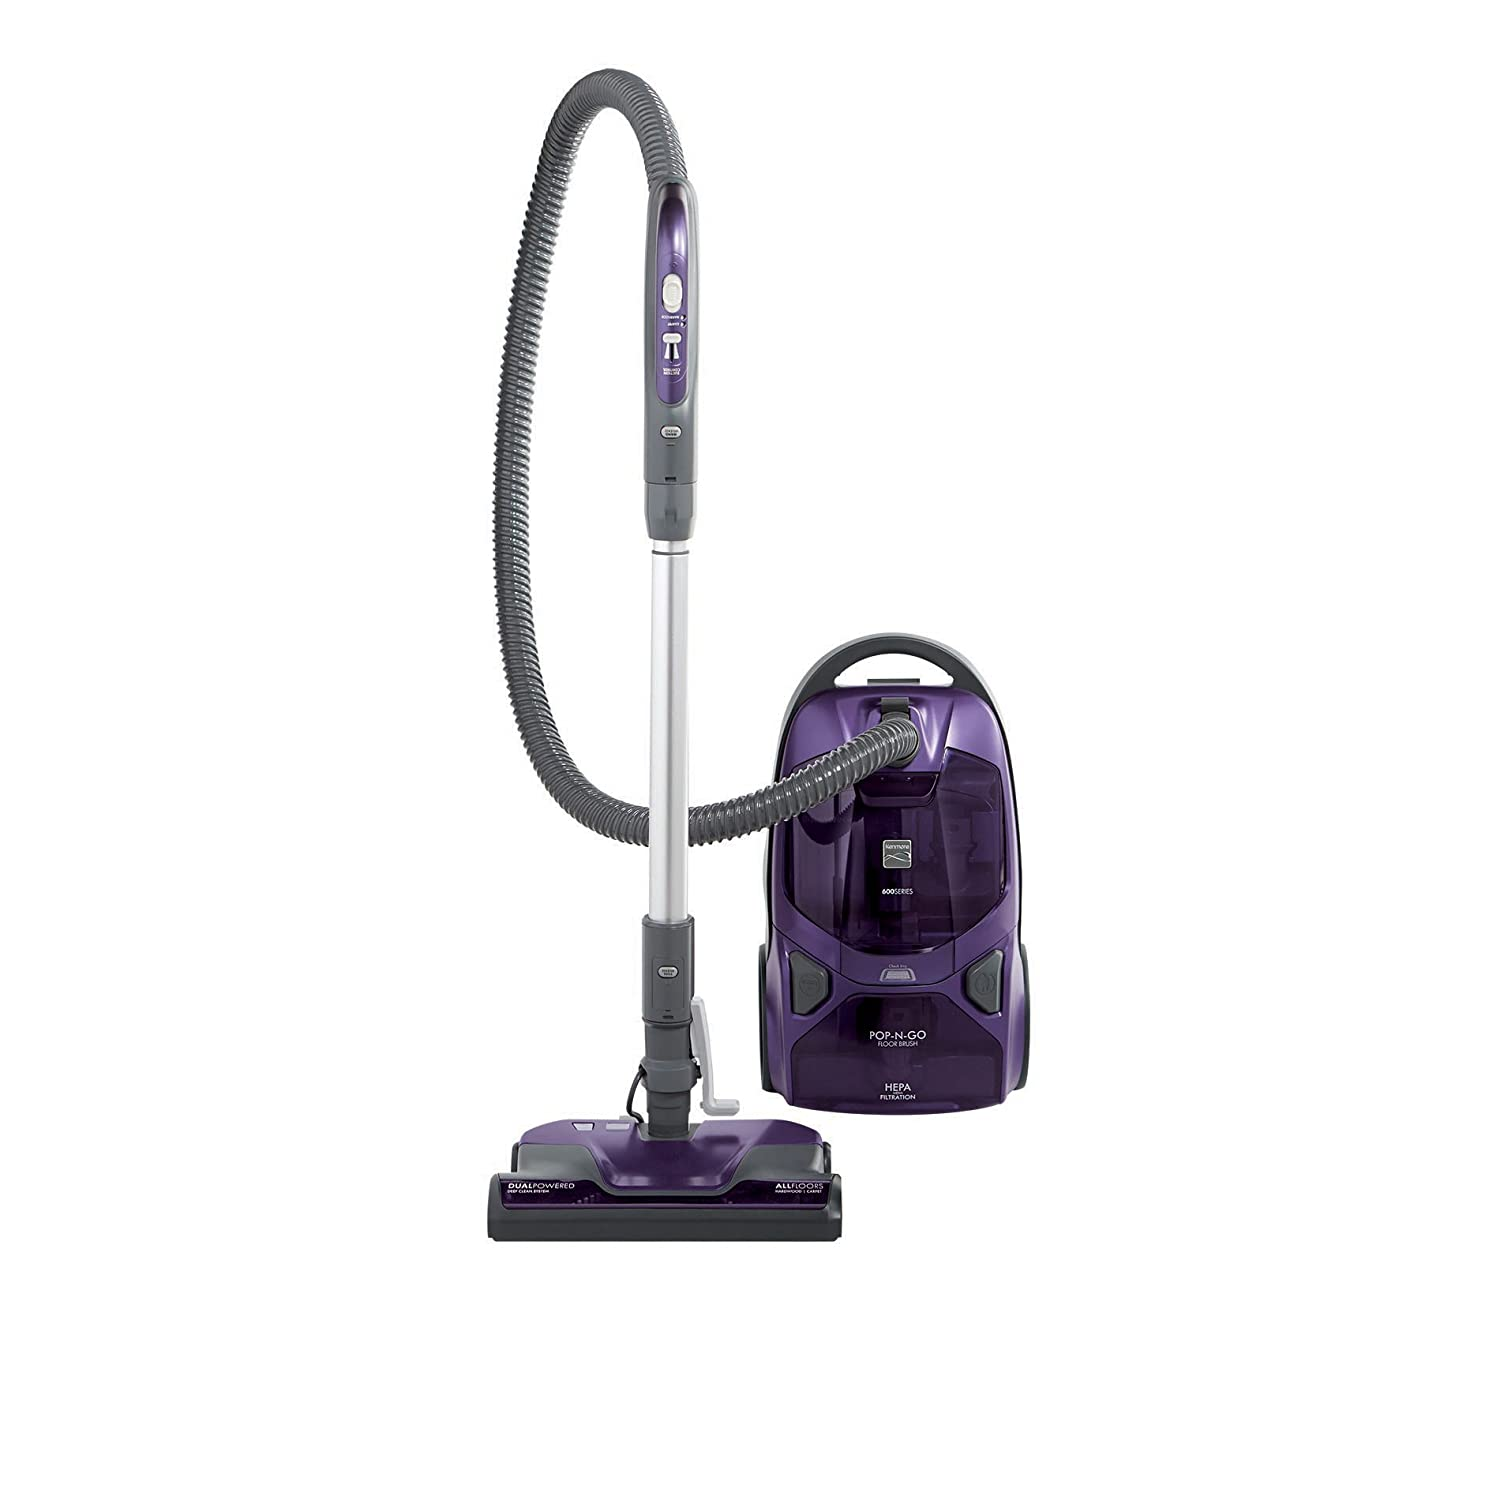 Kenmore 81614 Pet Friendly Lightweight Bagged Canister Vacuum